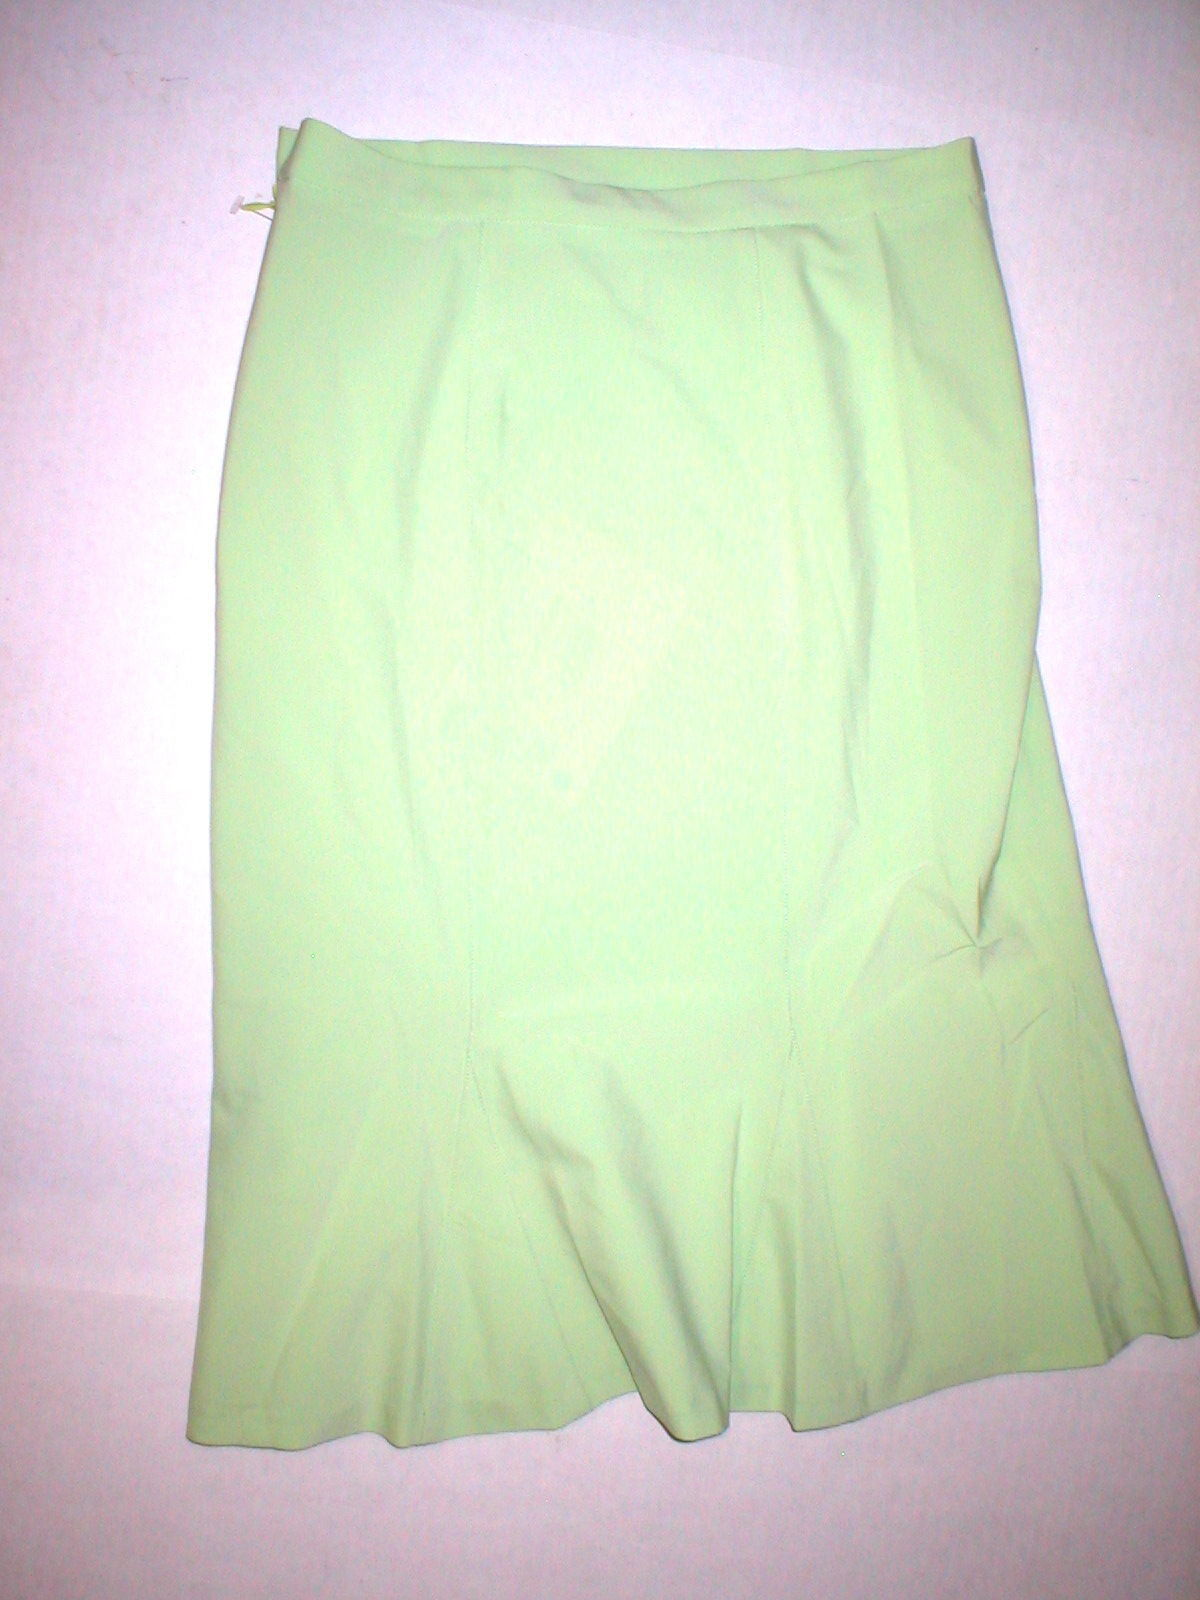 New Womens Designer Irie France Skirt Small S 25 Light Pale Green NWT Fit Flare